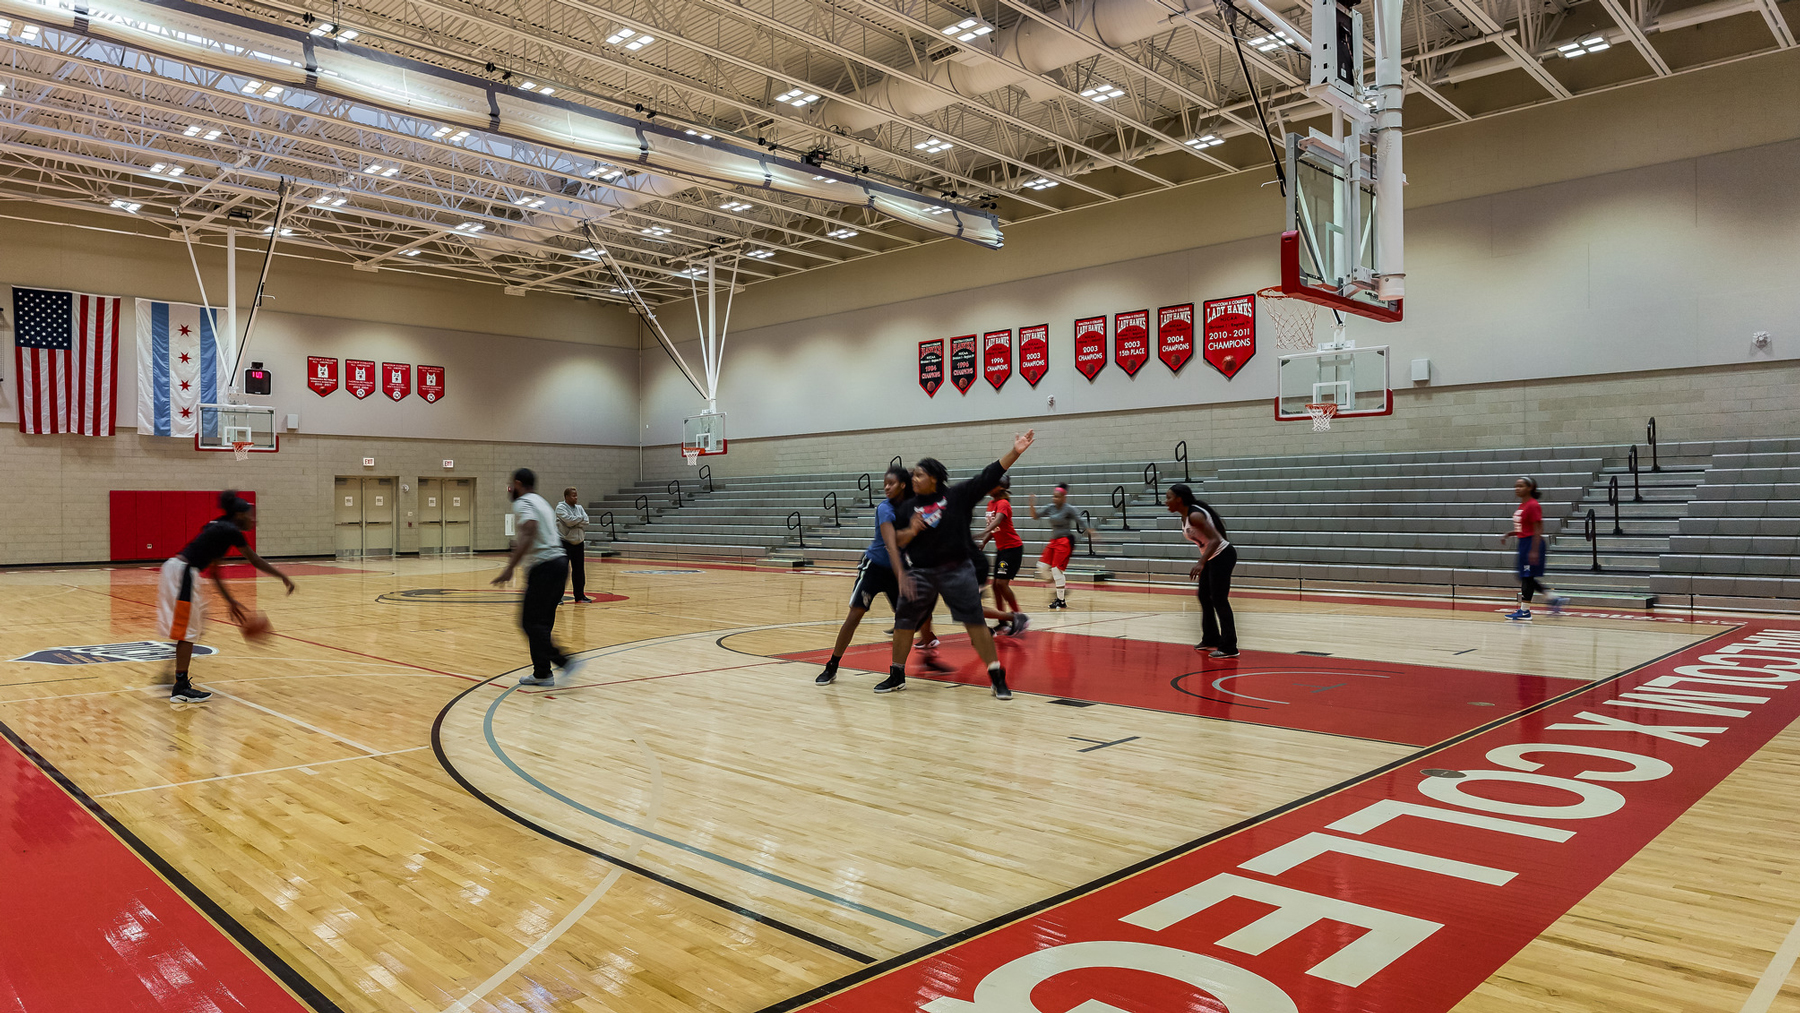 HEN_Project_MalcolmX-Health_CHI_Bball_1800